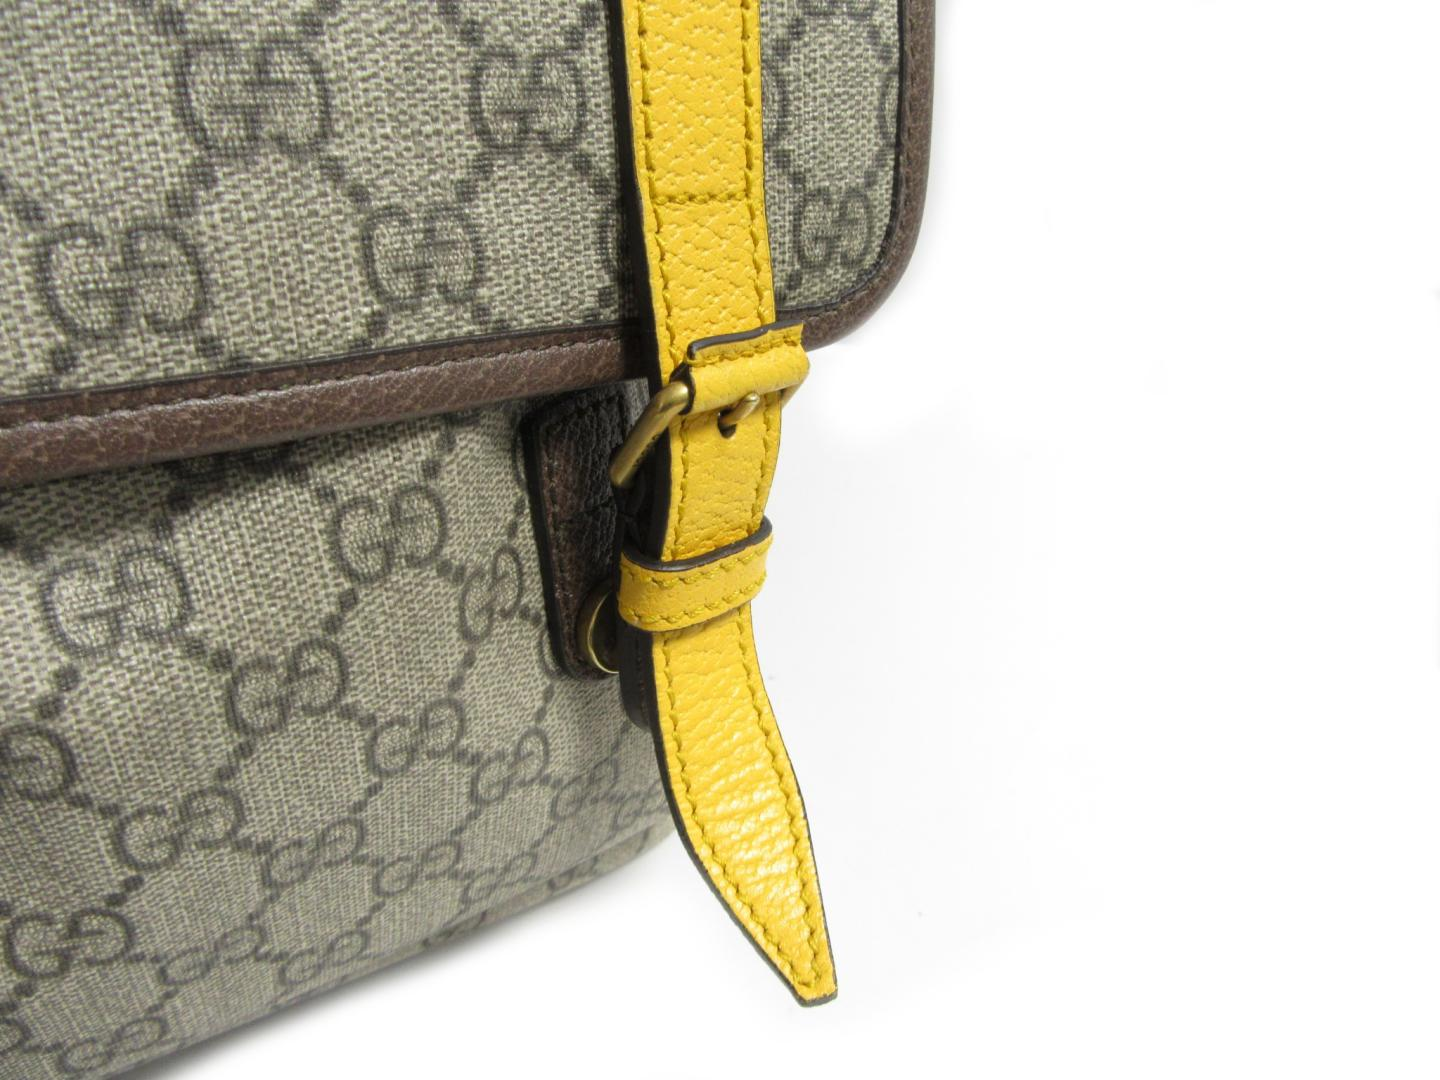 Authentic GUCCI GG Backpack 473869 Leather GG Supreme Canvas Beige Yellow 8ab1a0ec17500